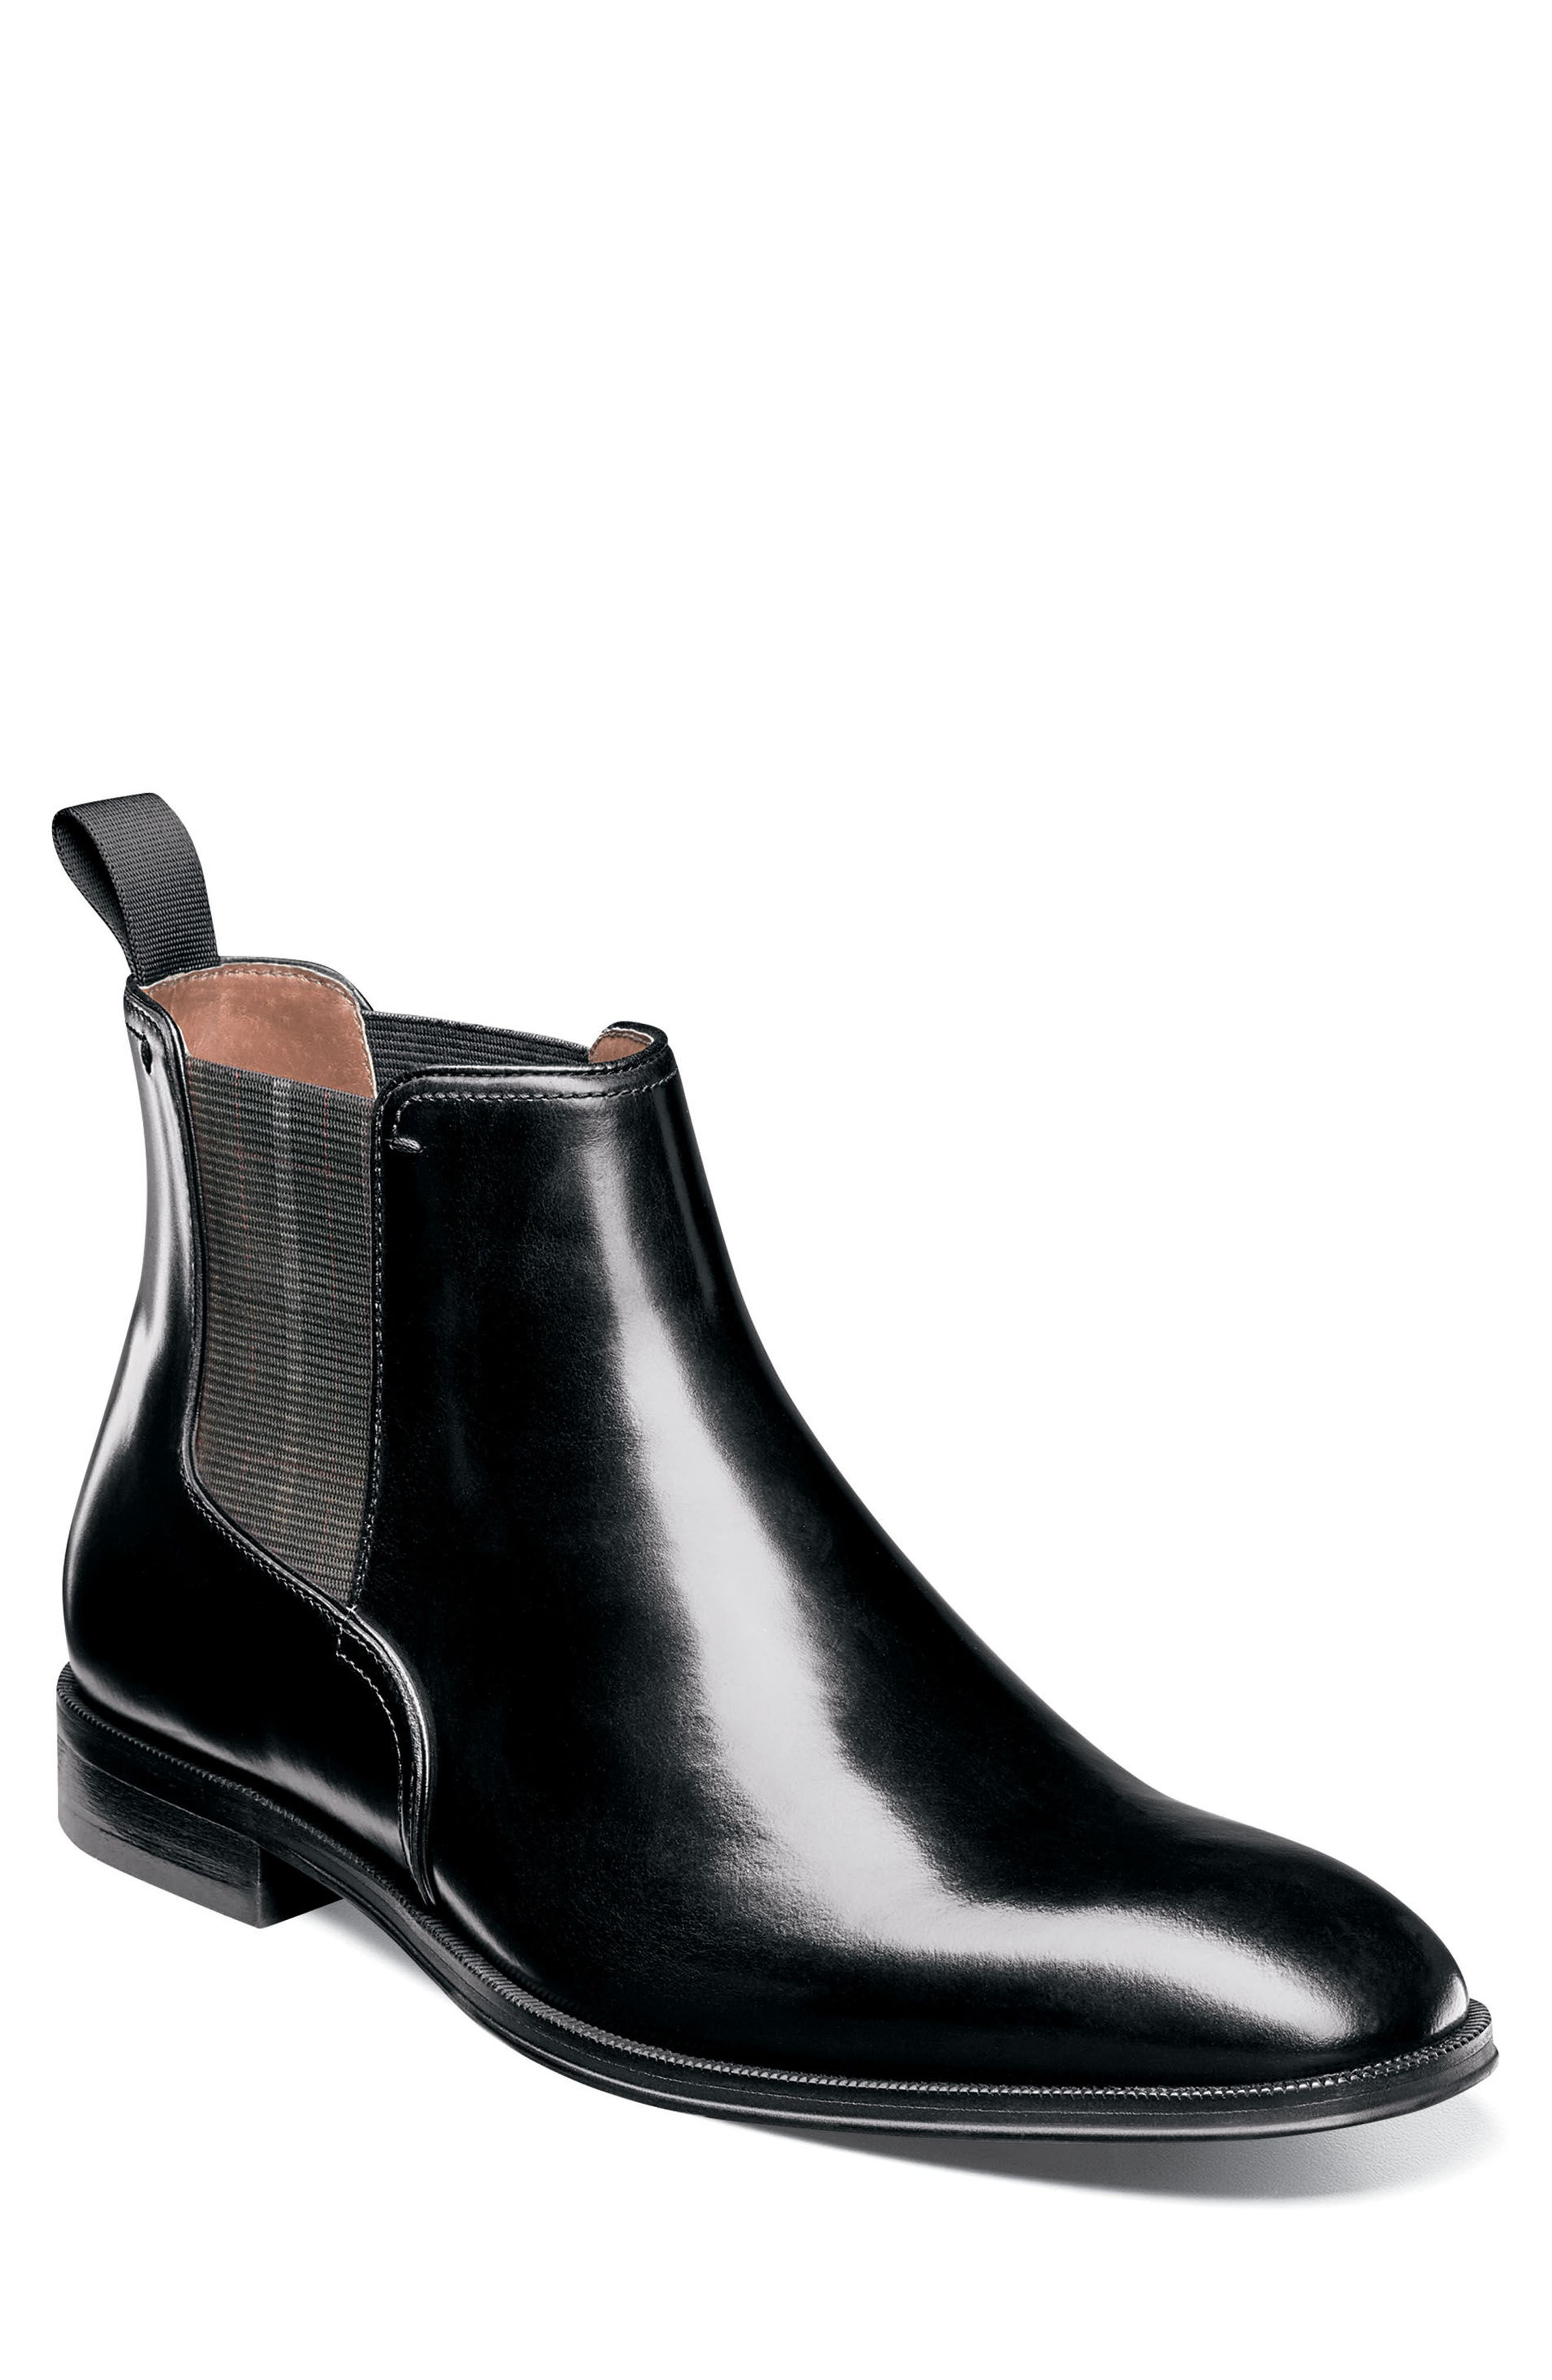 Belfast Chelsea Boot,                             Main thumbnail 1, color,                             Black Leather